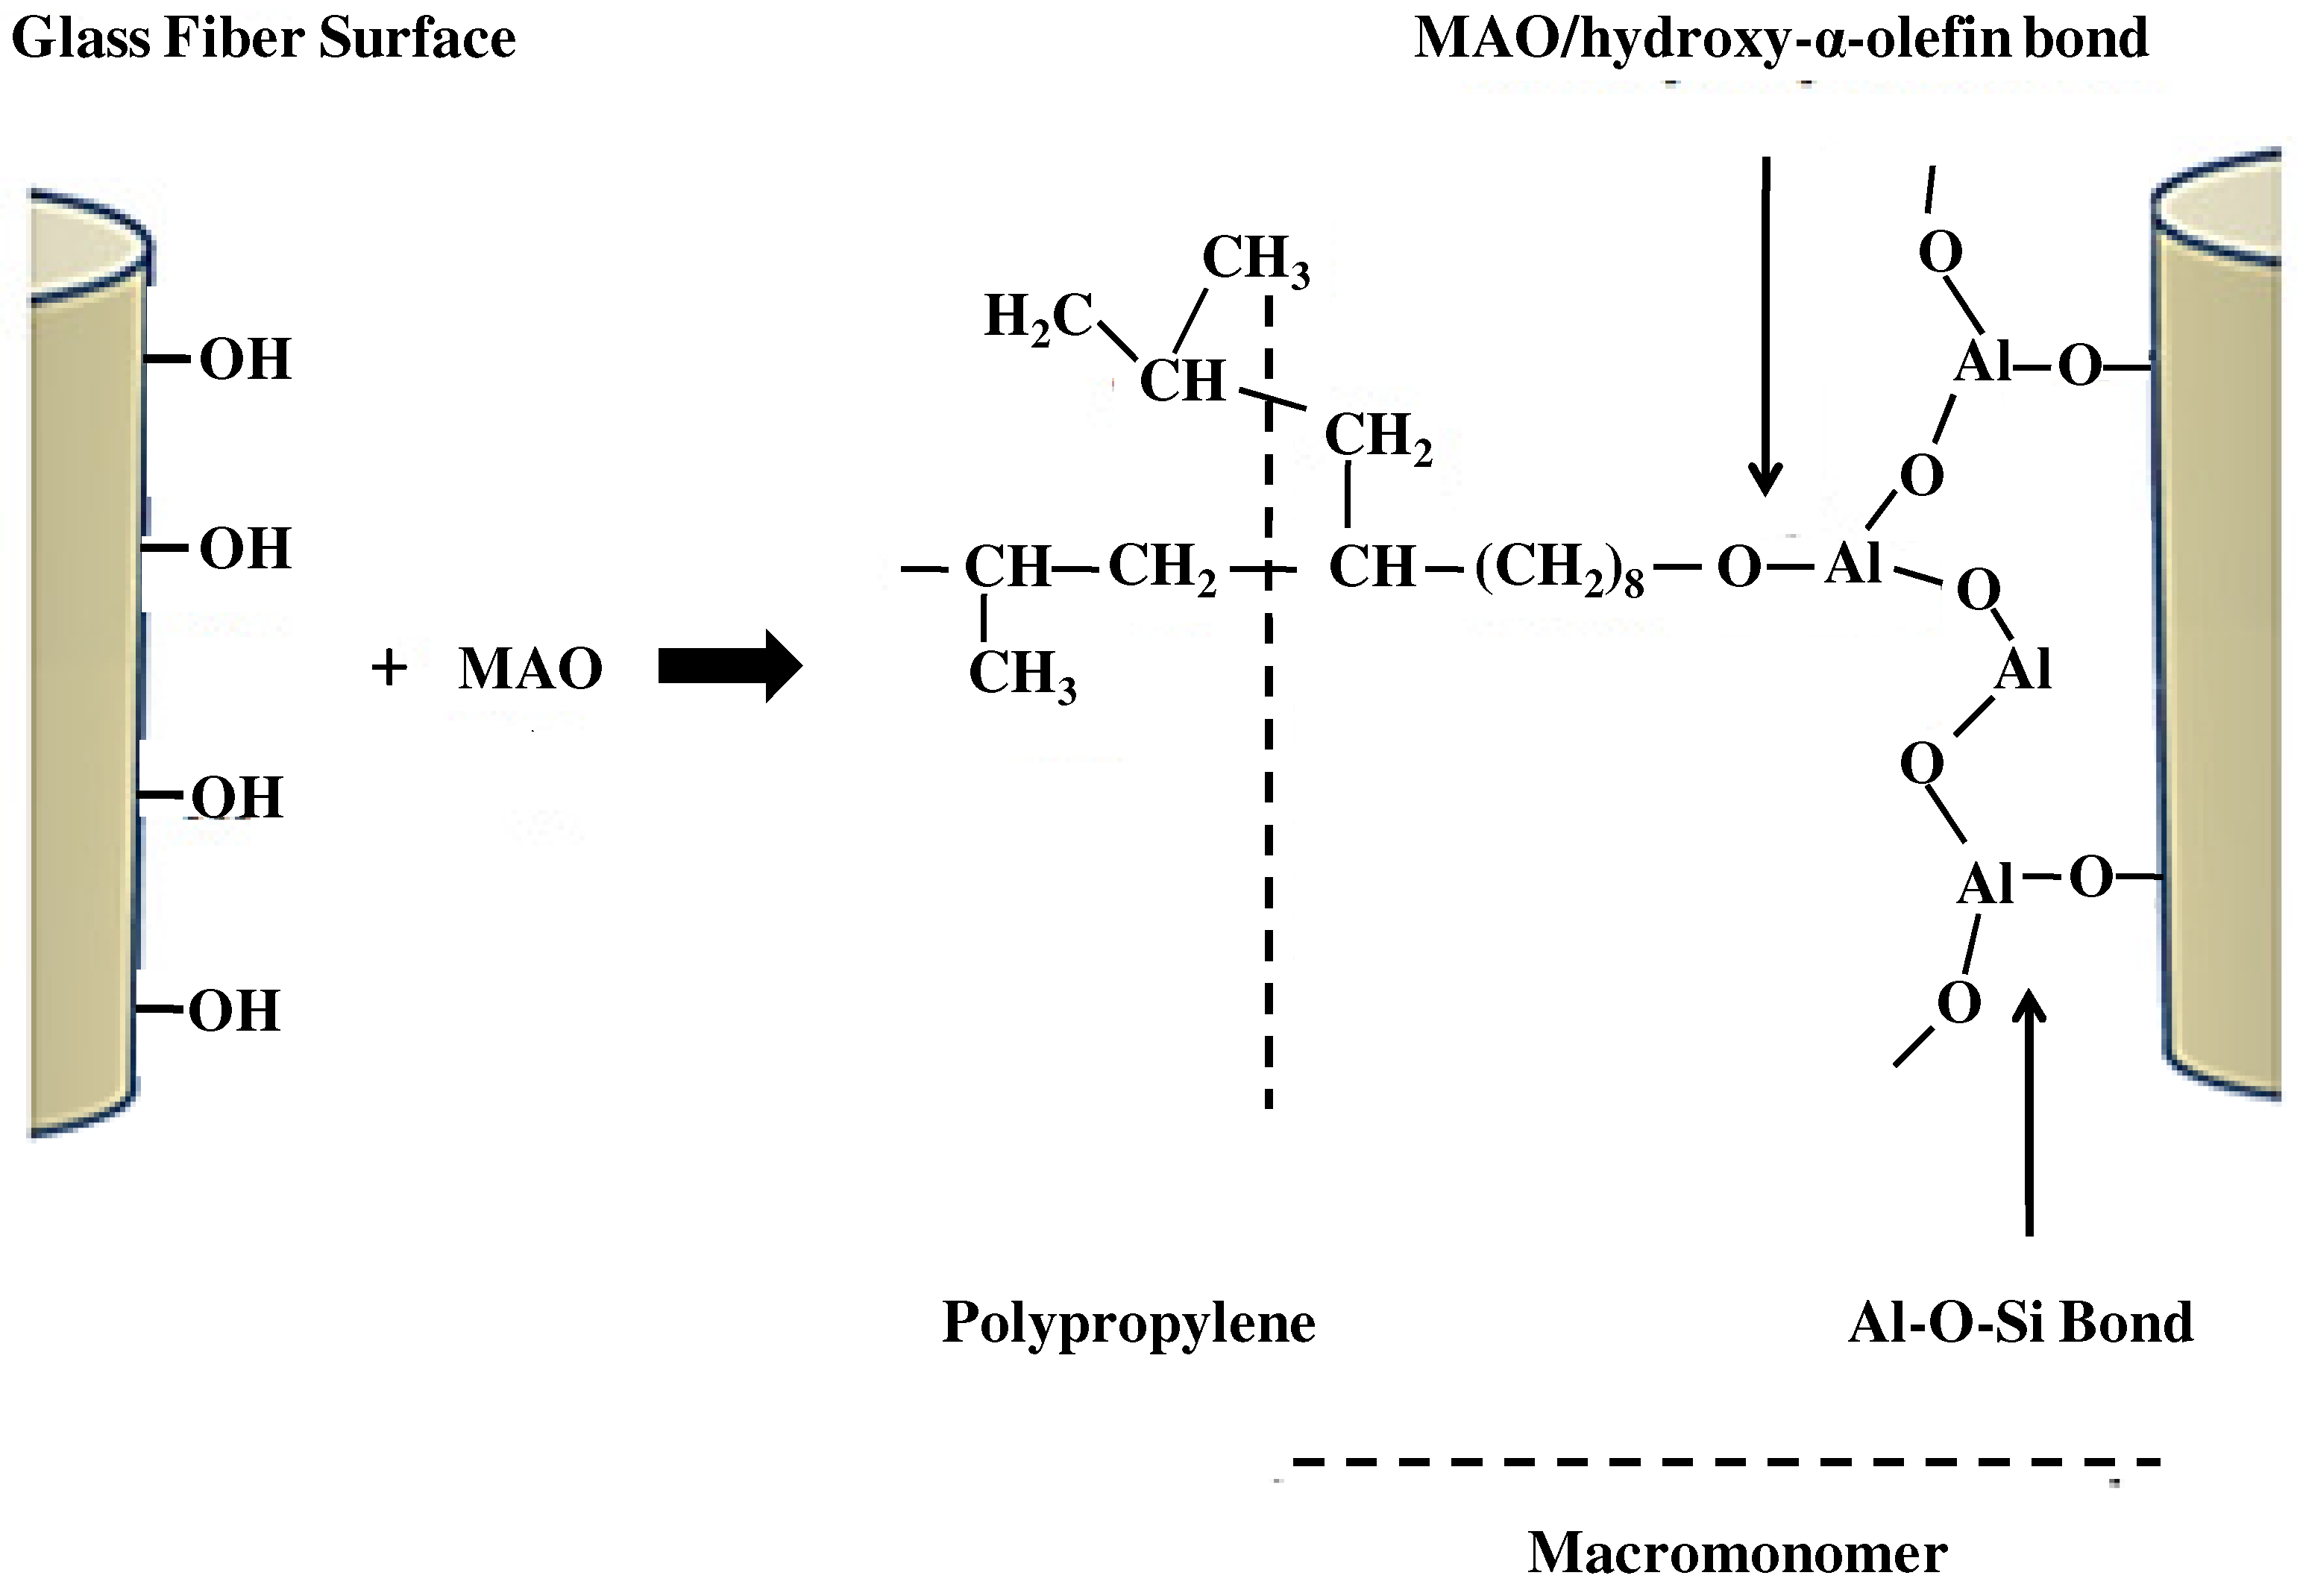 mechanical properties of polypropylene Polypropylene is a semicrystalline polymer that exhibits very attractive mechanical properties, like ductility and strength at room temperature or under moderate rates of deformation 1.